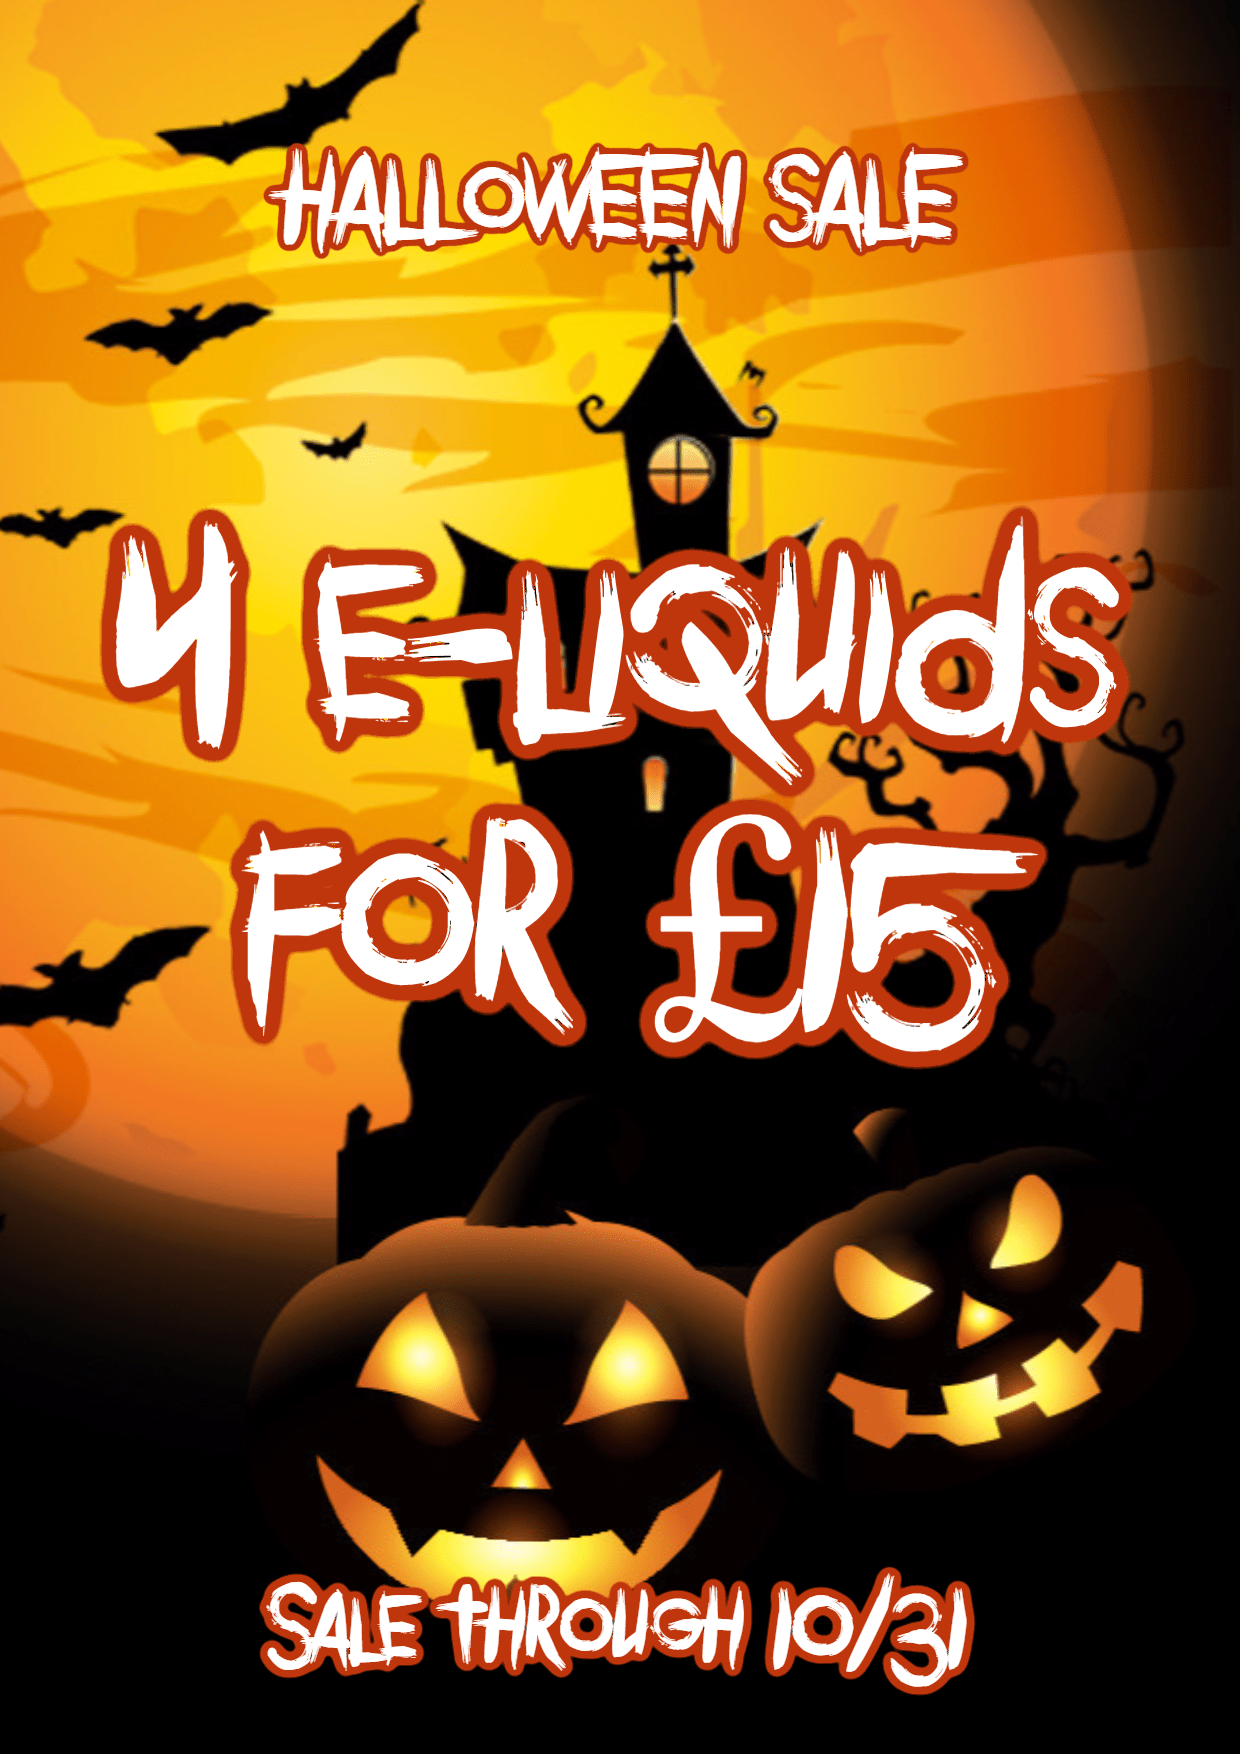 Sale,                Poster,                Halloween,                Black,                Yellow,                Red,                 Free Image